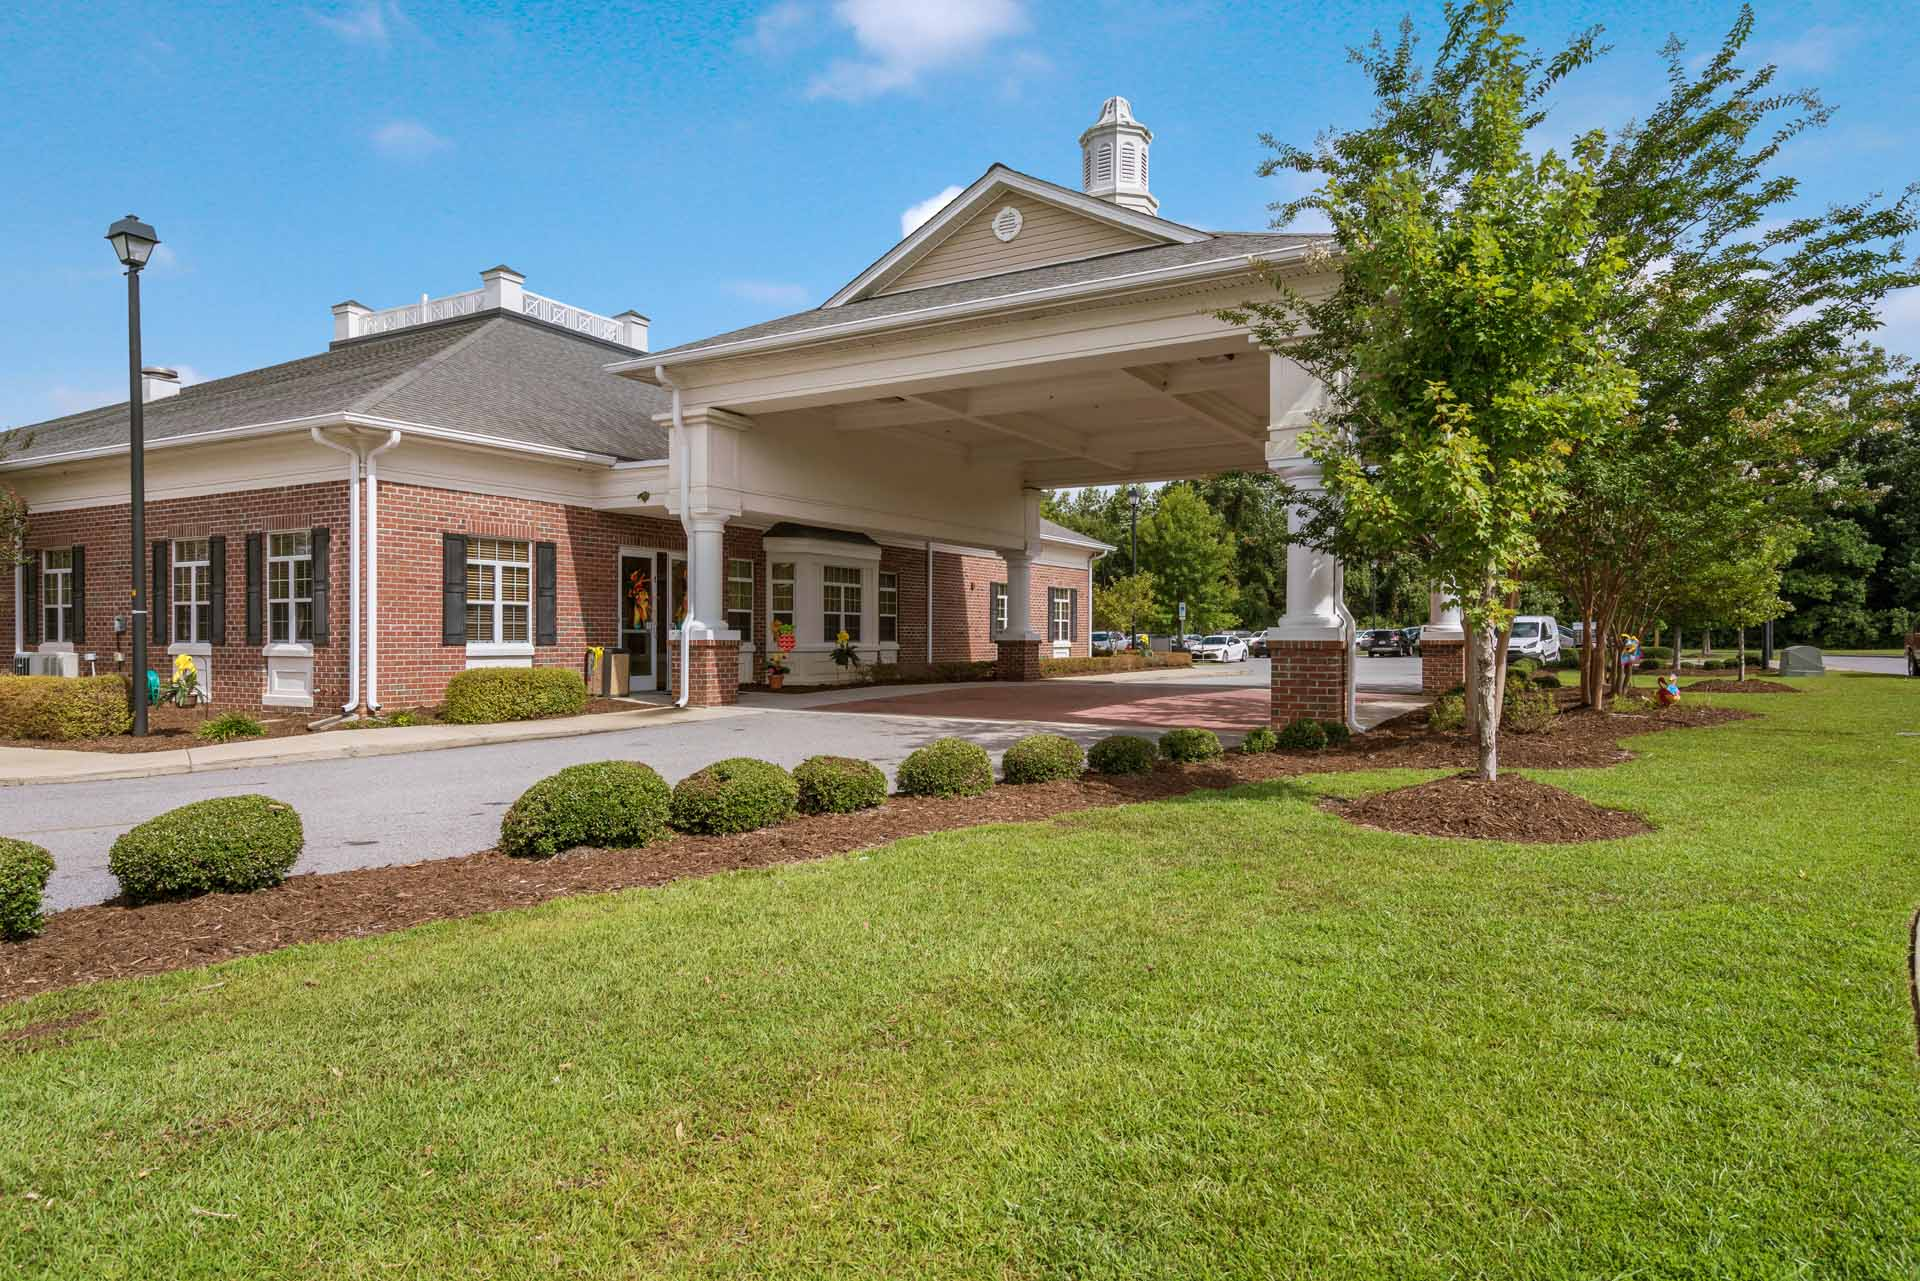 MacGregor Downs Health and Rehabilitation Center